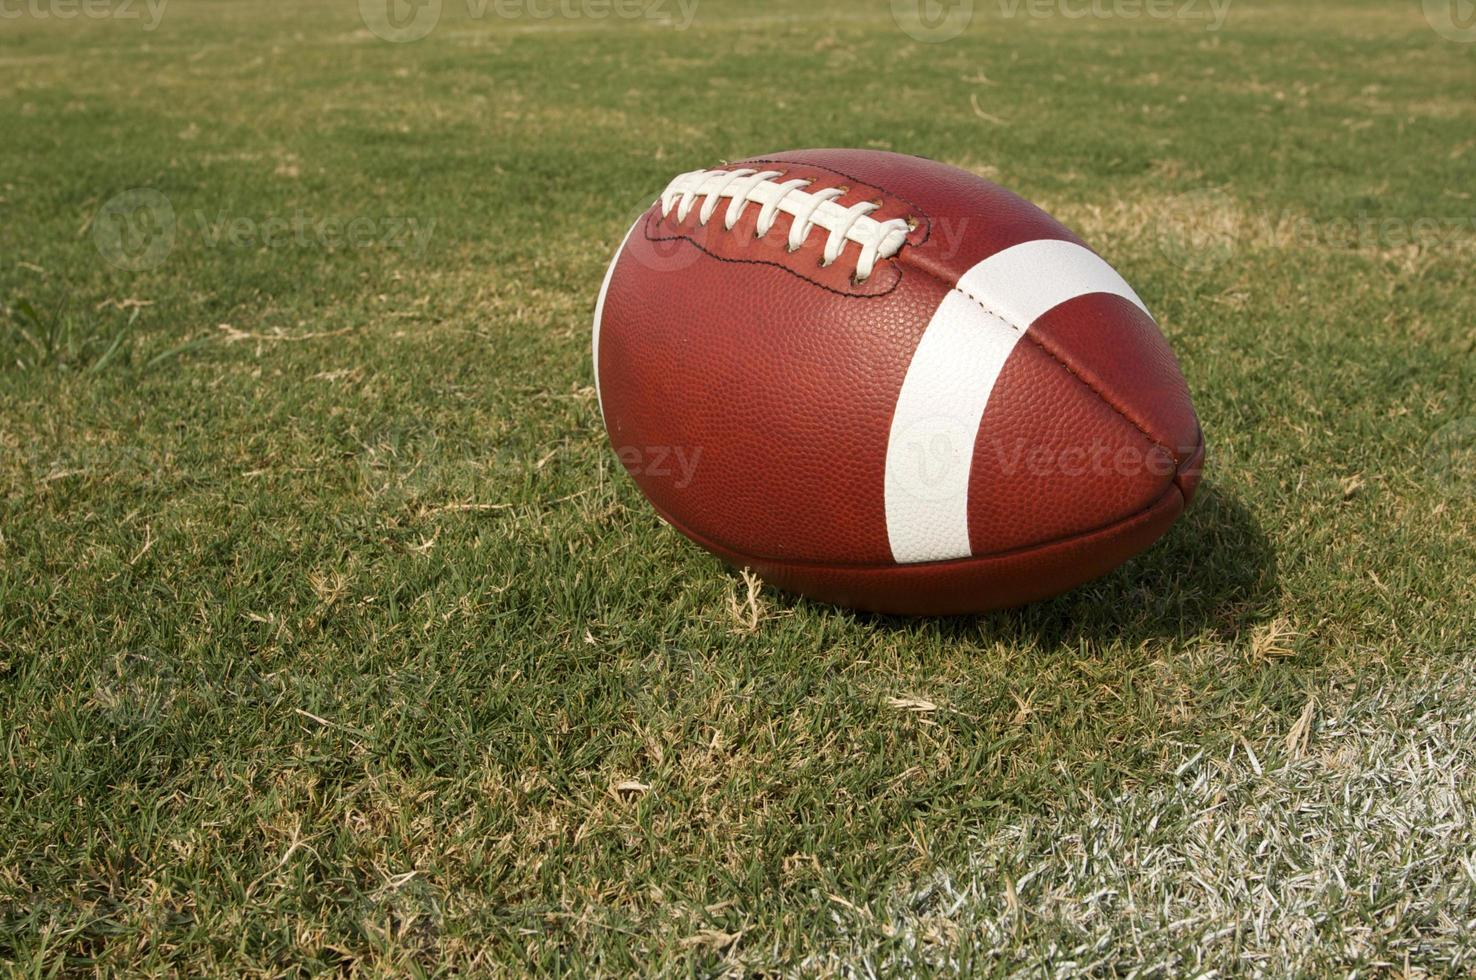 American Football on the Grass photo